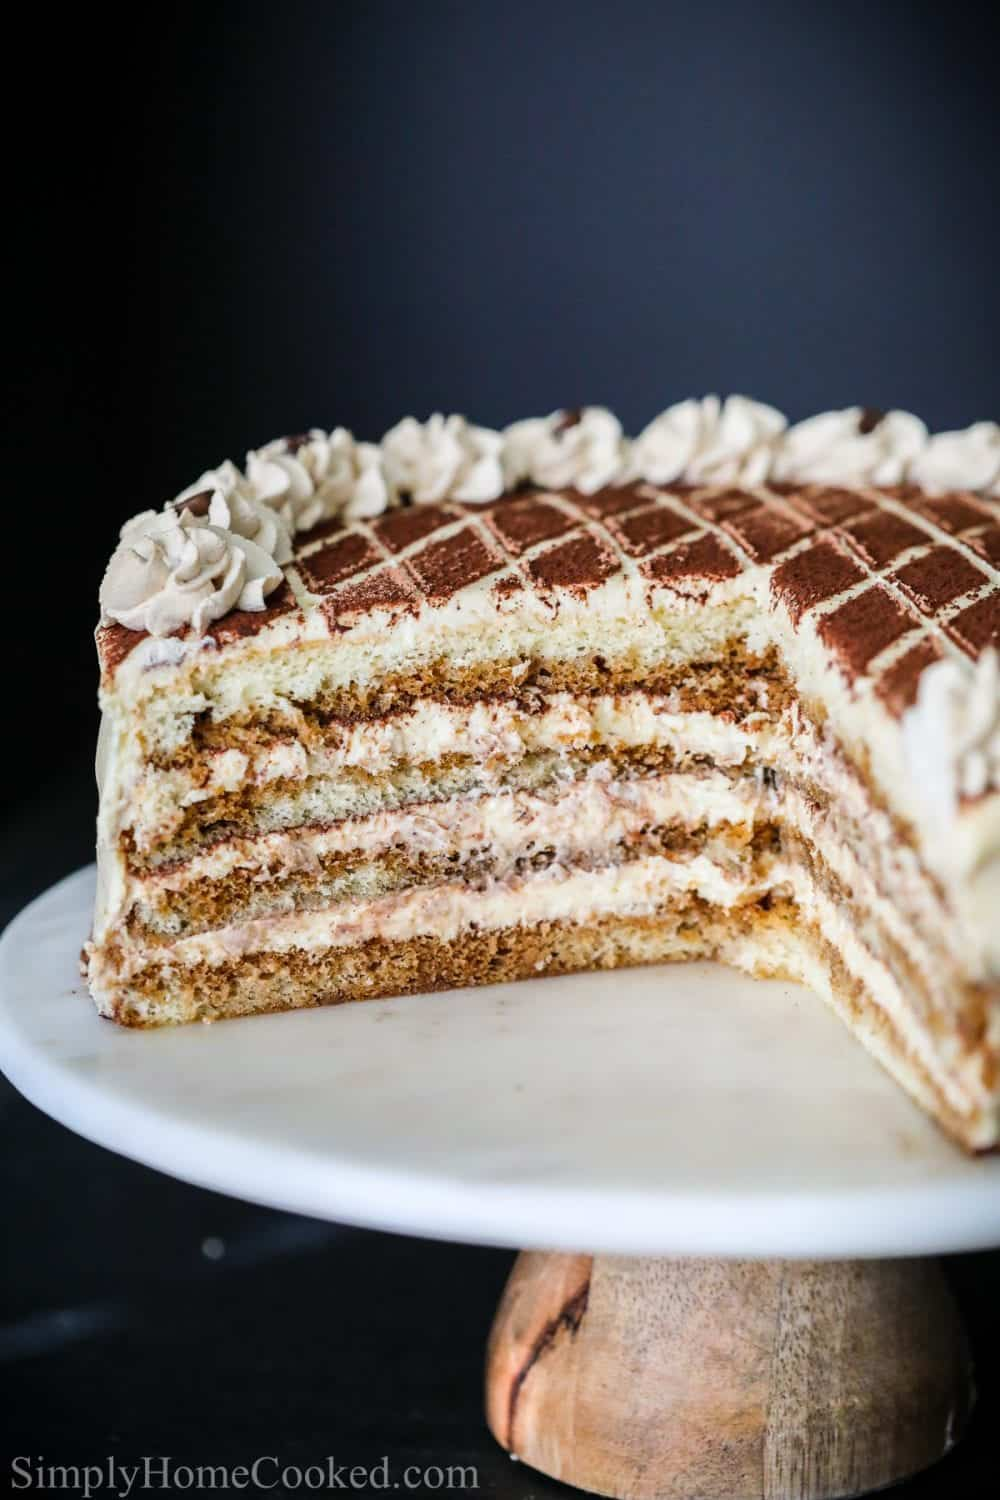 sliced tiramisu cake with cocoa powder on top